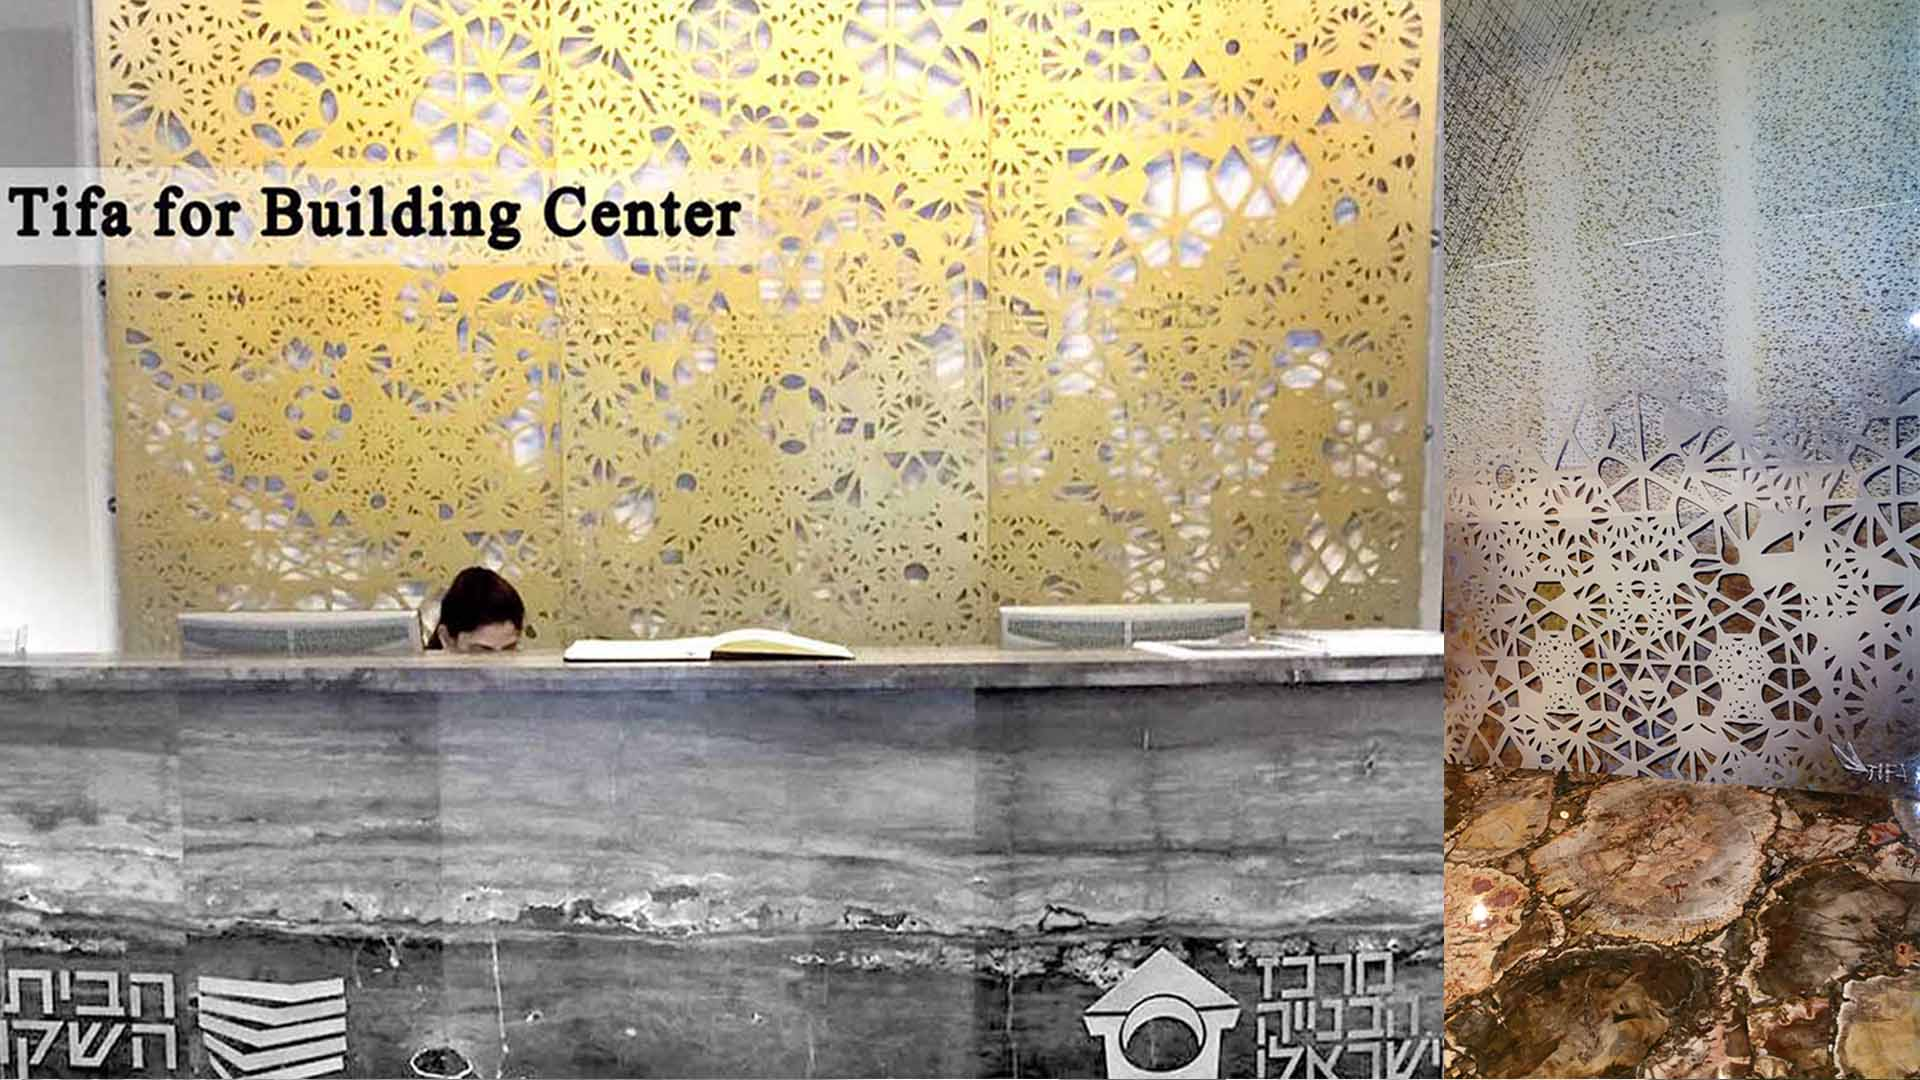 The Israeli Building Center and the